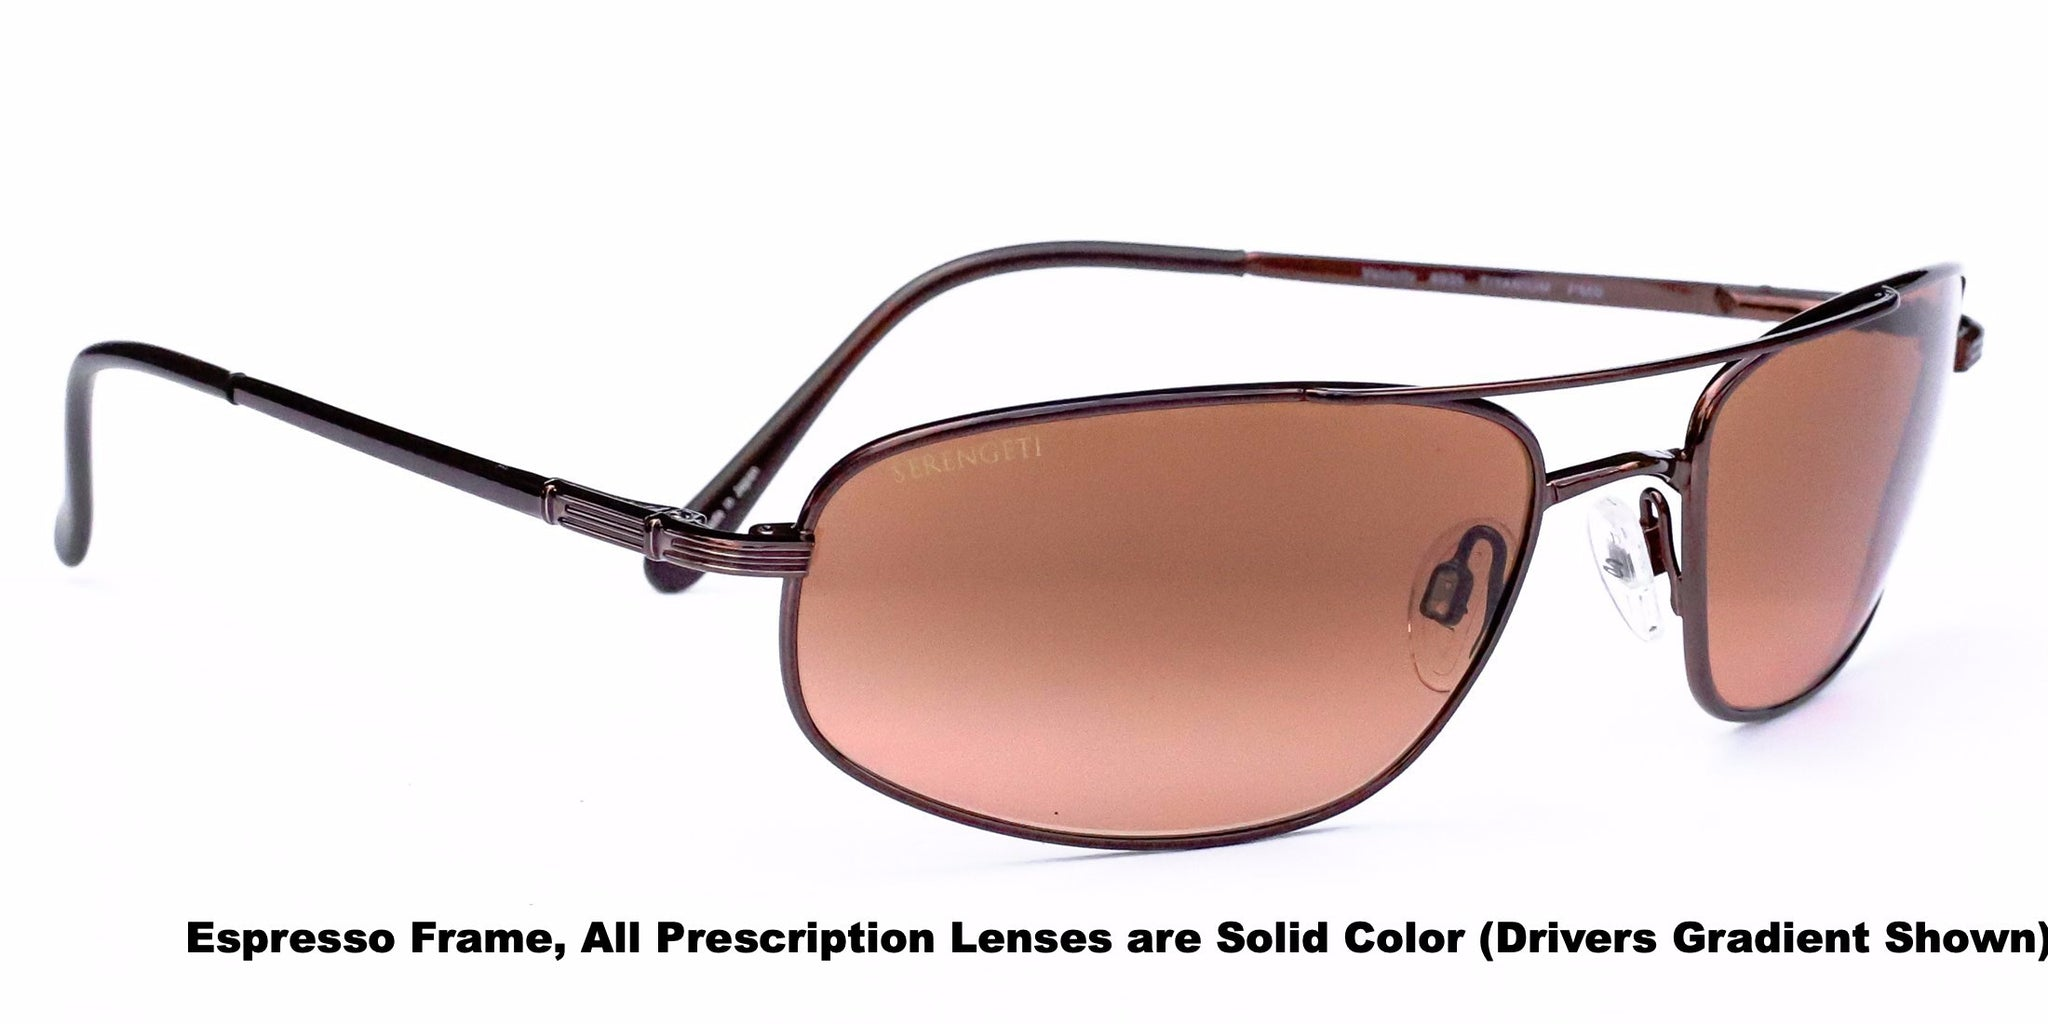 87845e87a96c Serengeti Velocity Progressive Prescription Sunglasses - Free Shipping &  Handling